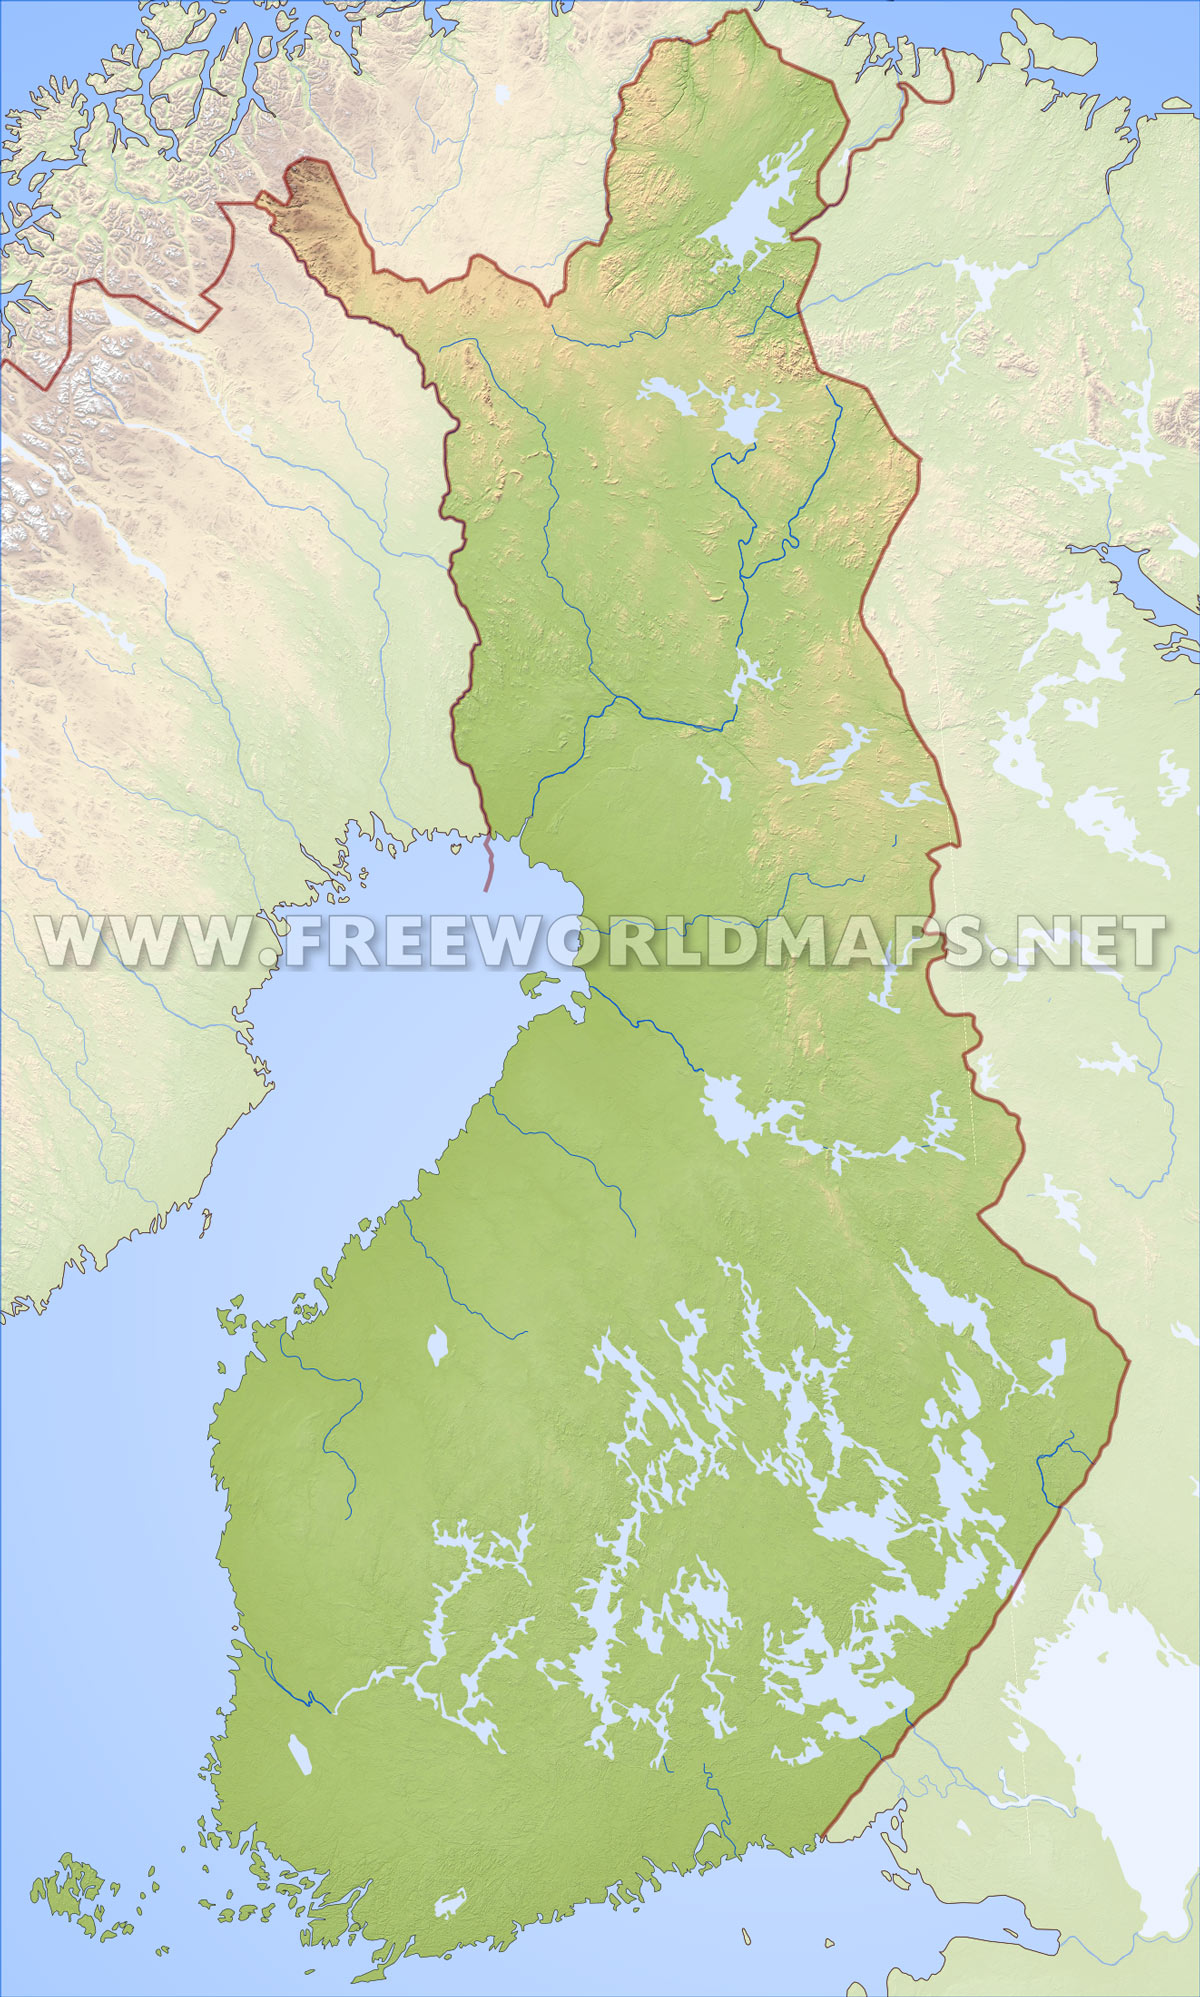 finland finland hd map heres the middle